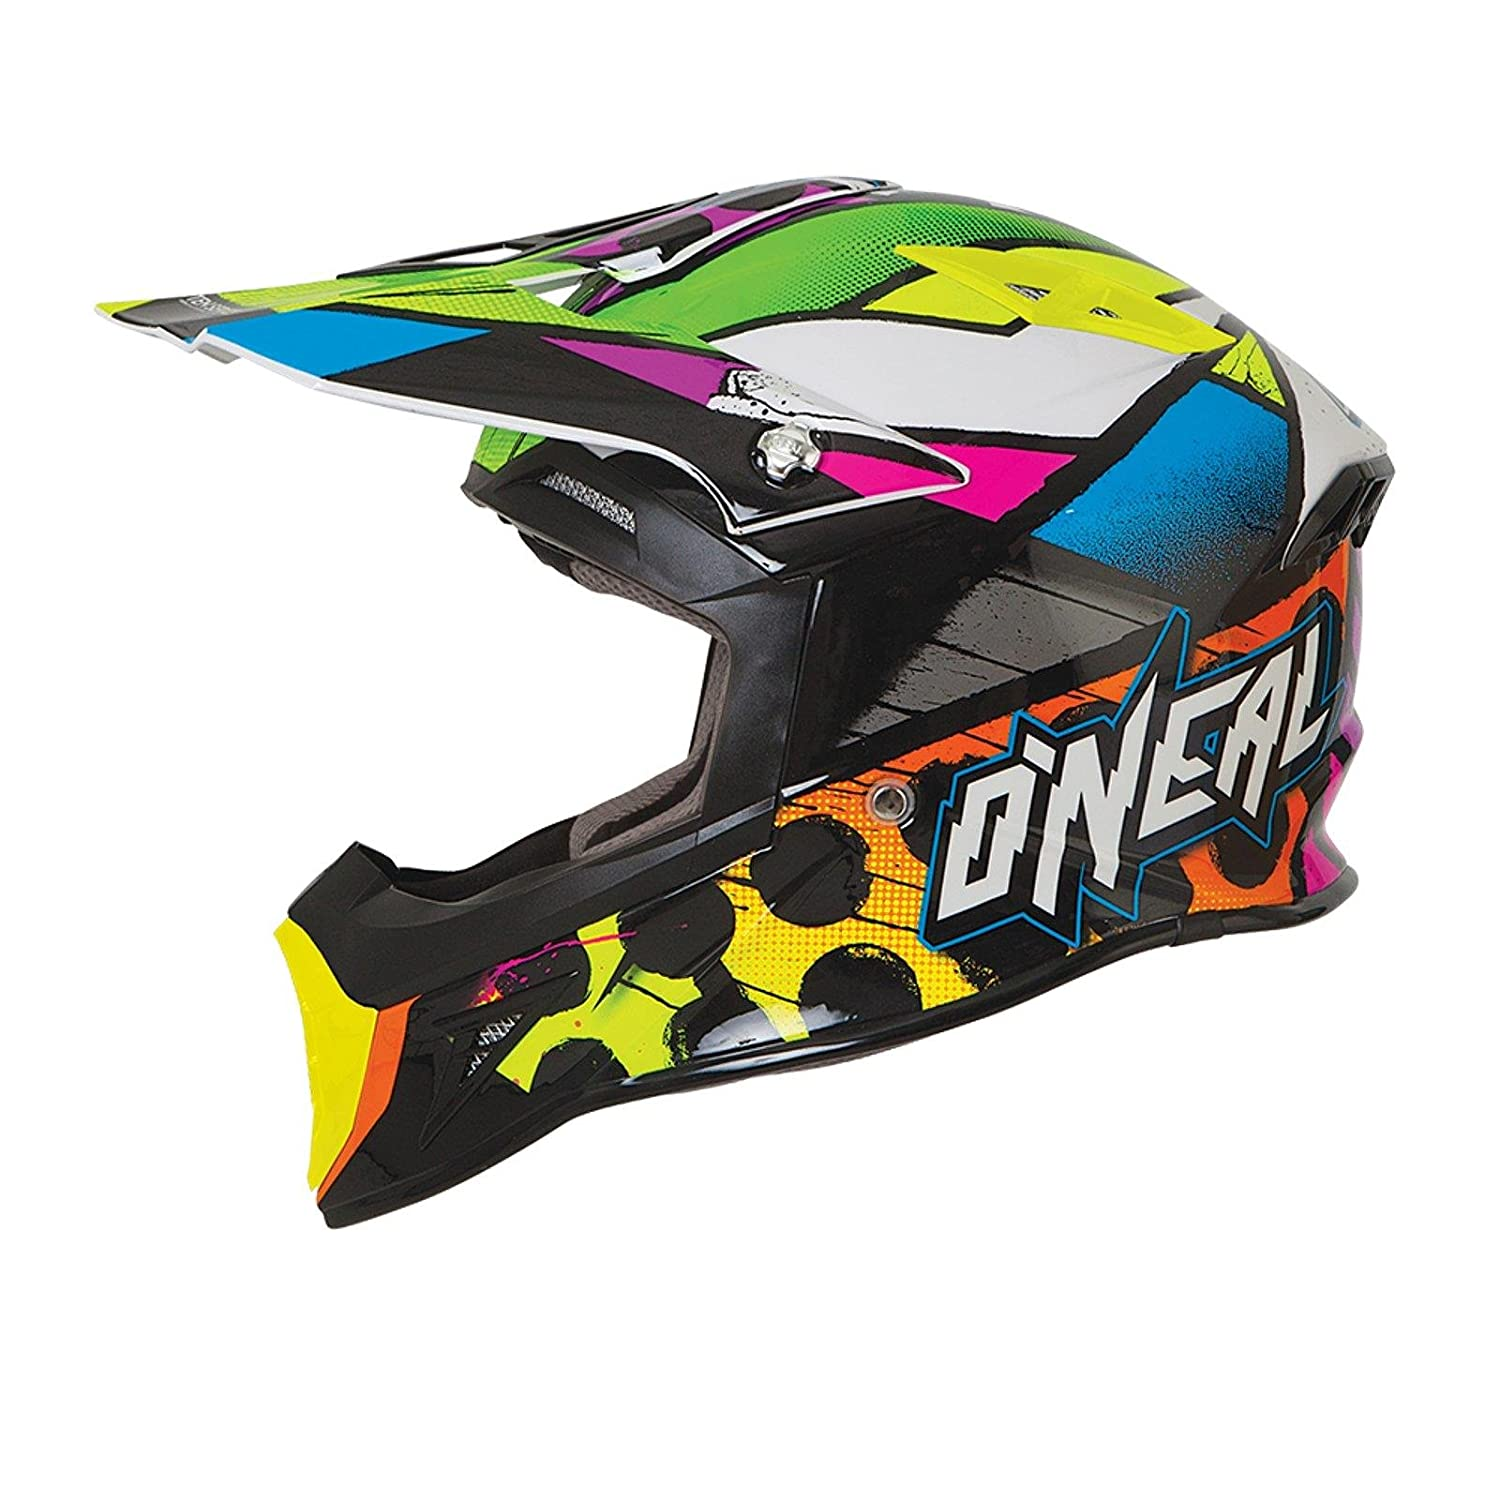 O& 039;Neal 10Series MX Helm Glitch Schwarz Multi Motocross Enduro Offroad, 0624G-1